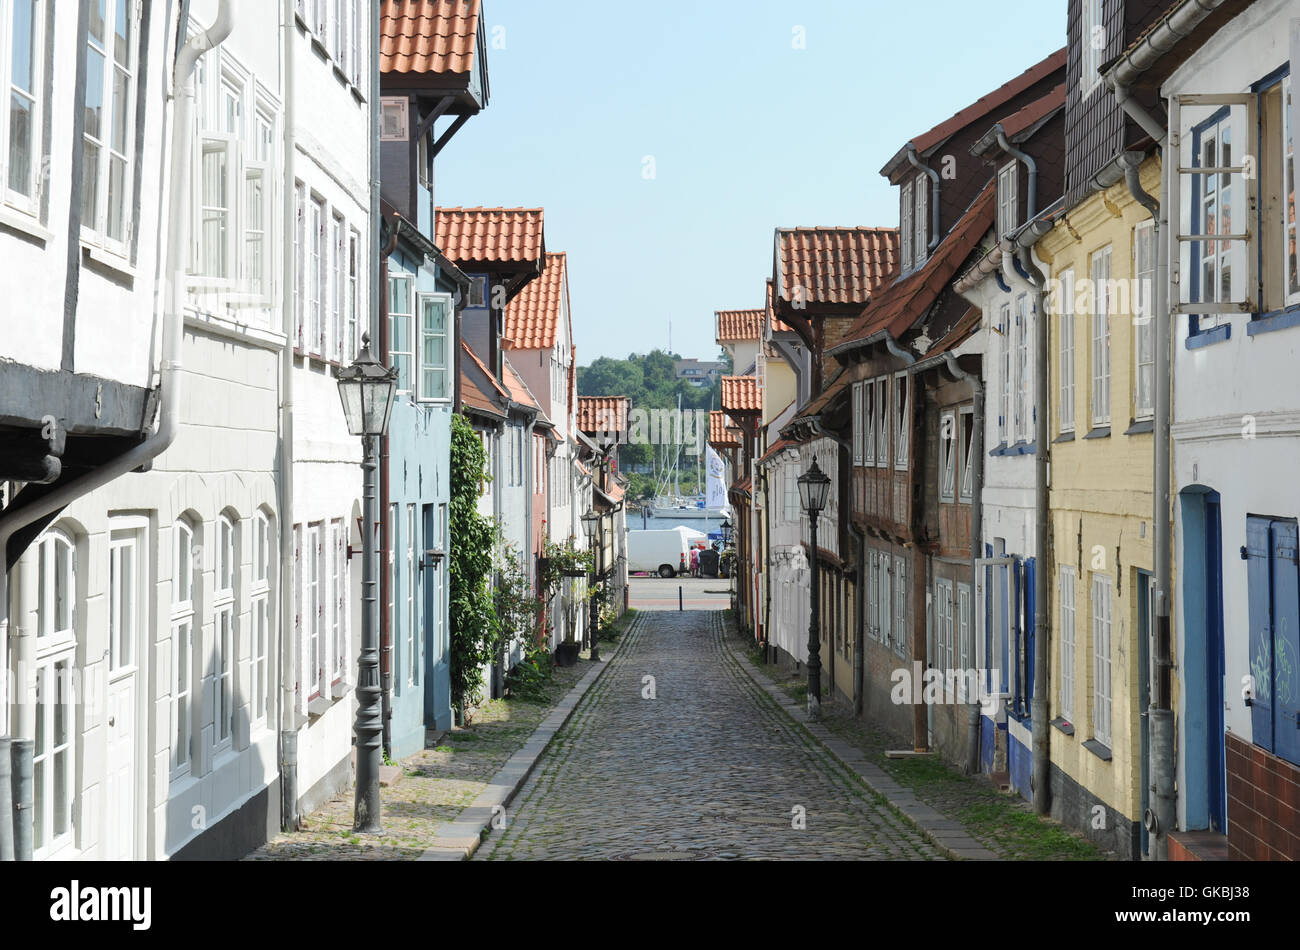 old town sightseeing Northern Germany - Stock Image